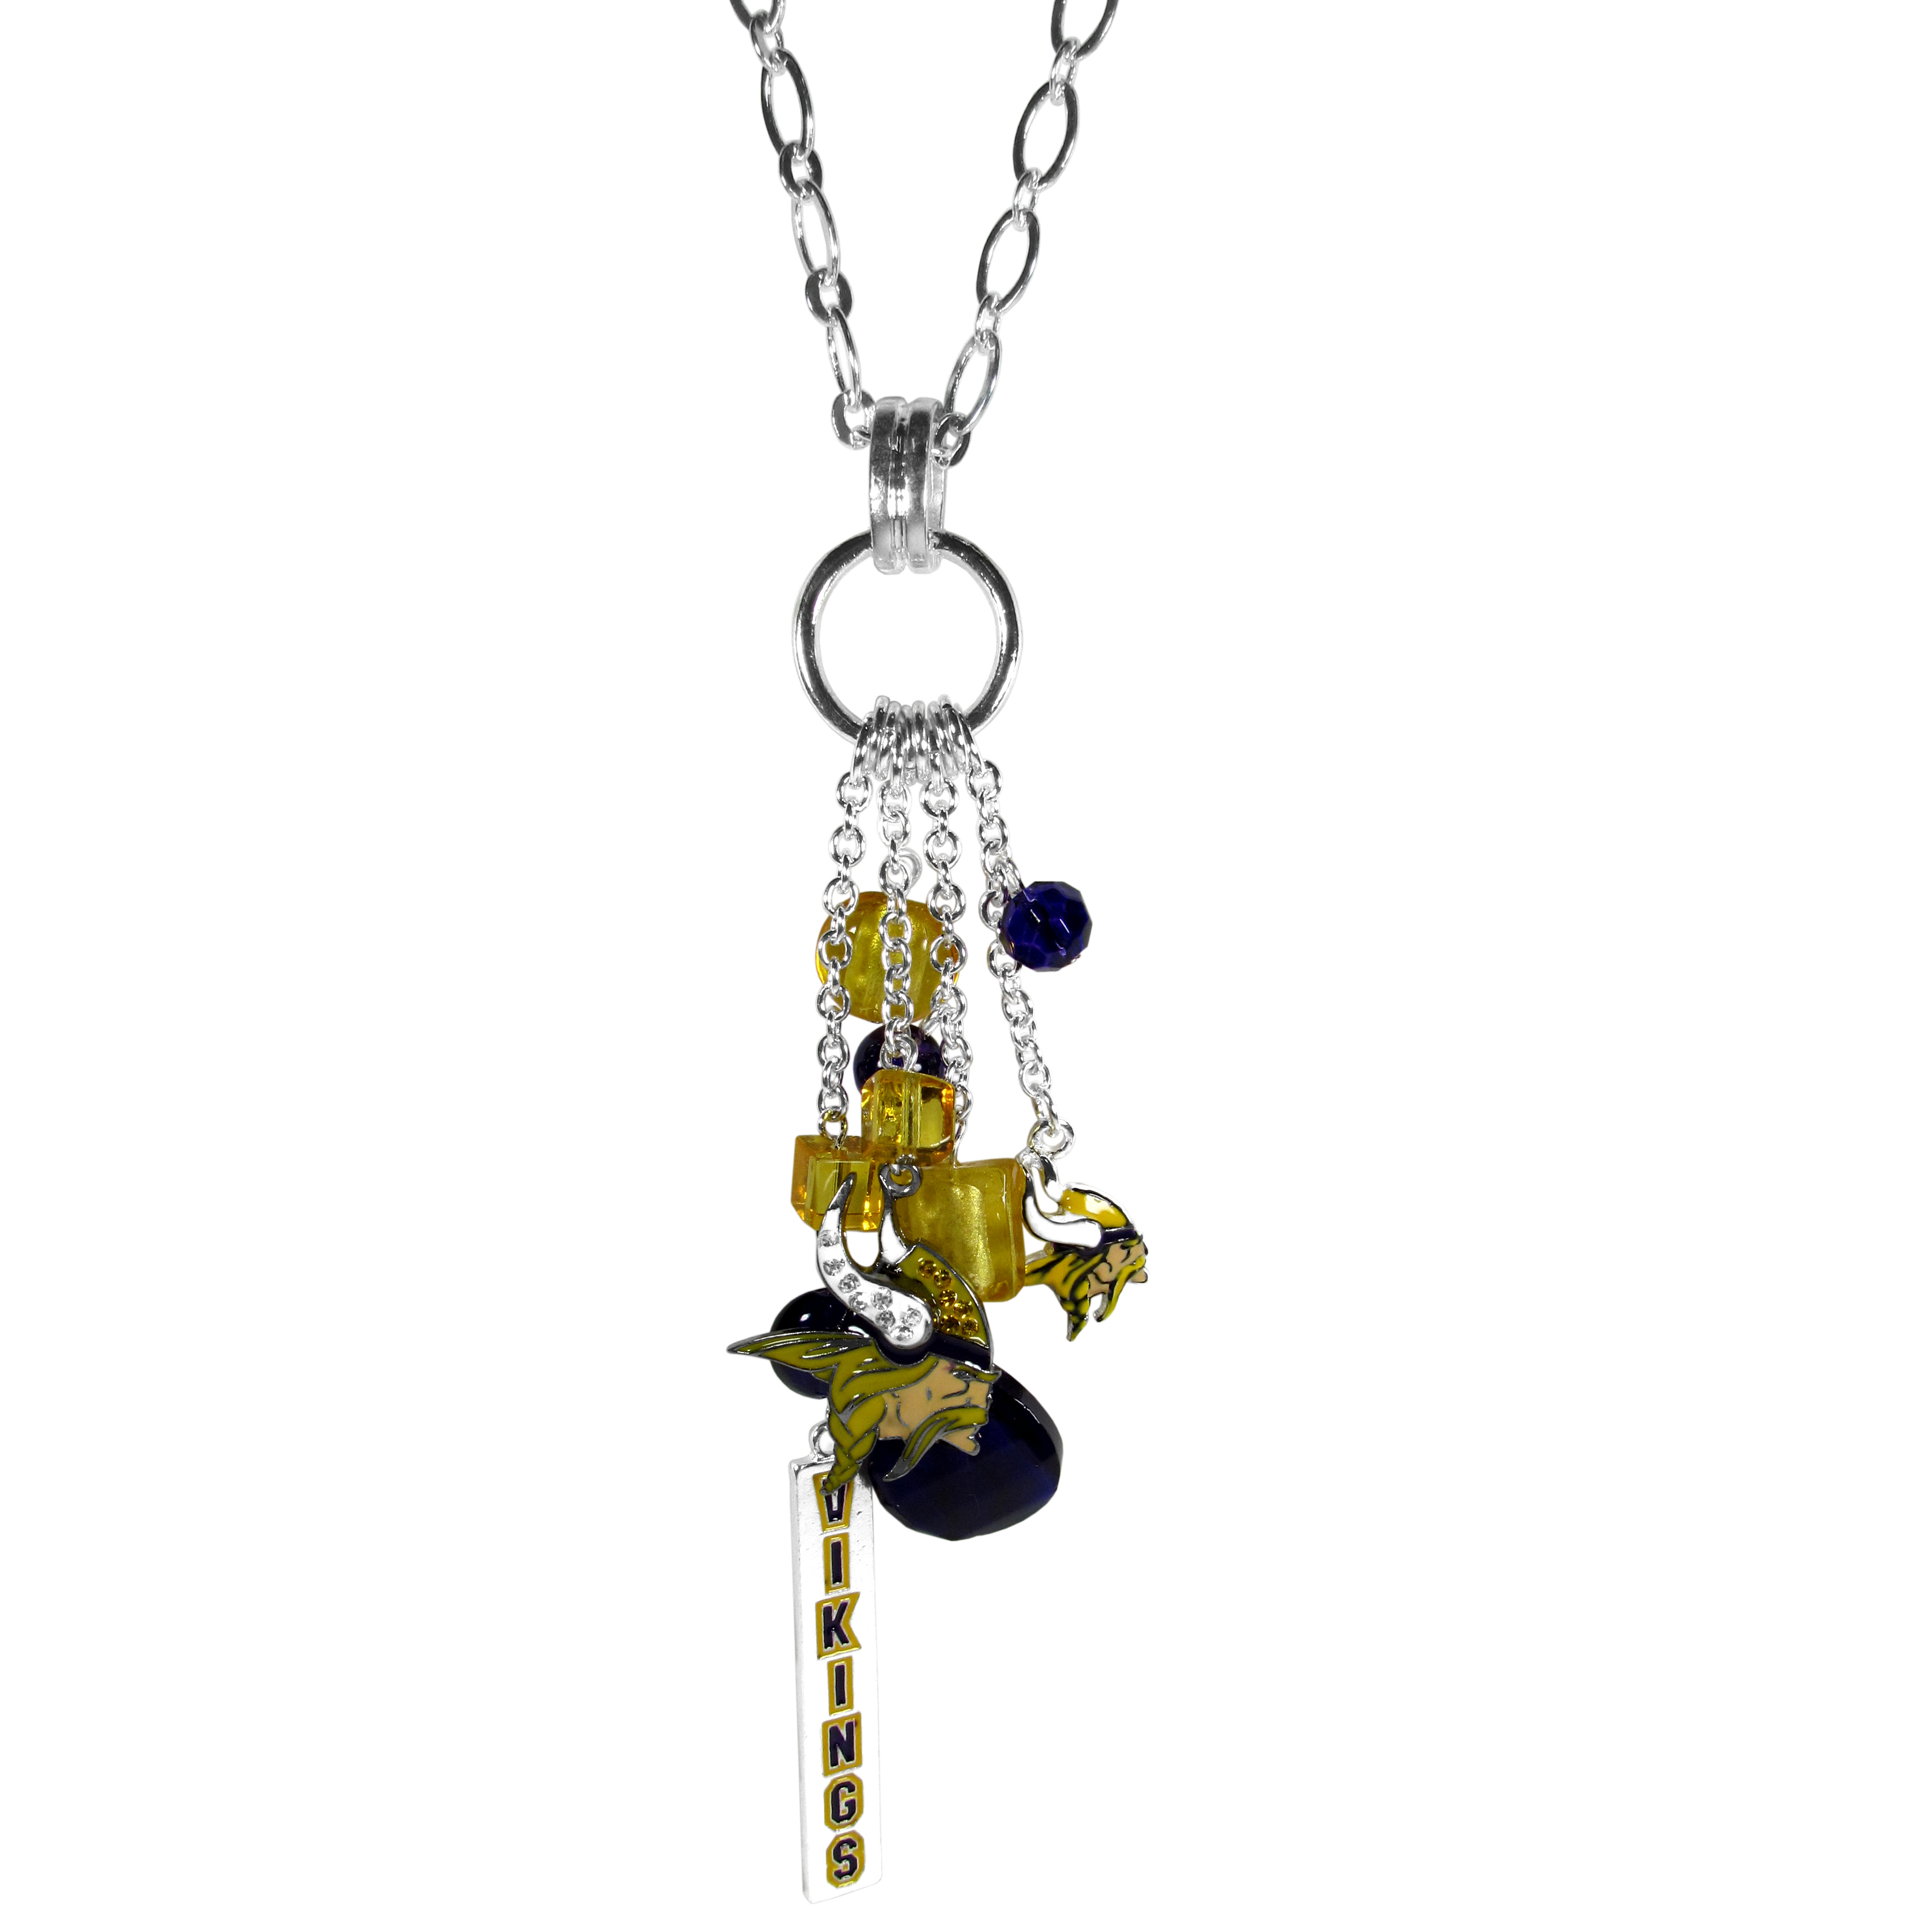 Minnesota Vikings Cluster Necklace - Our trendy cluster necklace makes a big statement with a 30 inch, silver plated, link chain that features a stylish cluster of Minnesota Vikings charms that hang an additional 4 inches off of the chain. This bold fashion jewelry piece has 4 chain lenghts in the cluster that have alternating color bauble beads and 2 metal team charms, one with crystals and a long bar charm with the team name.